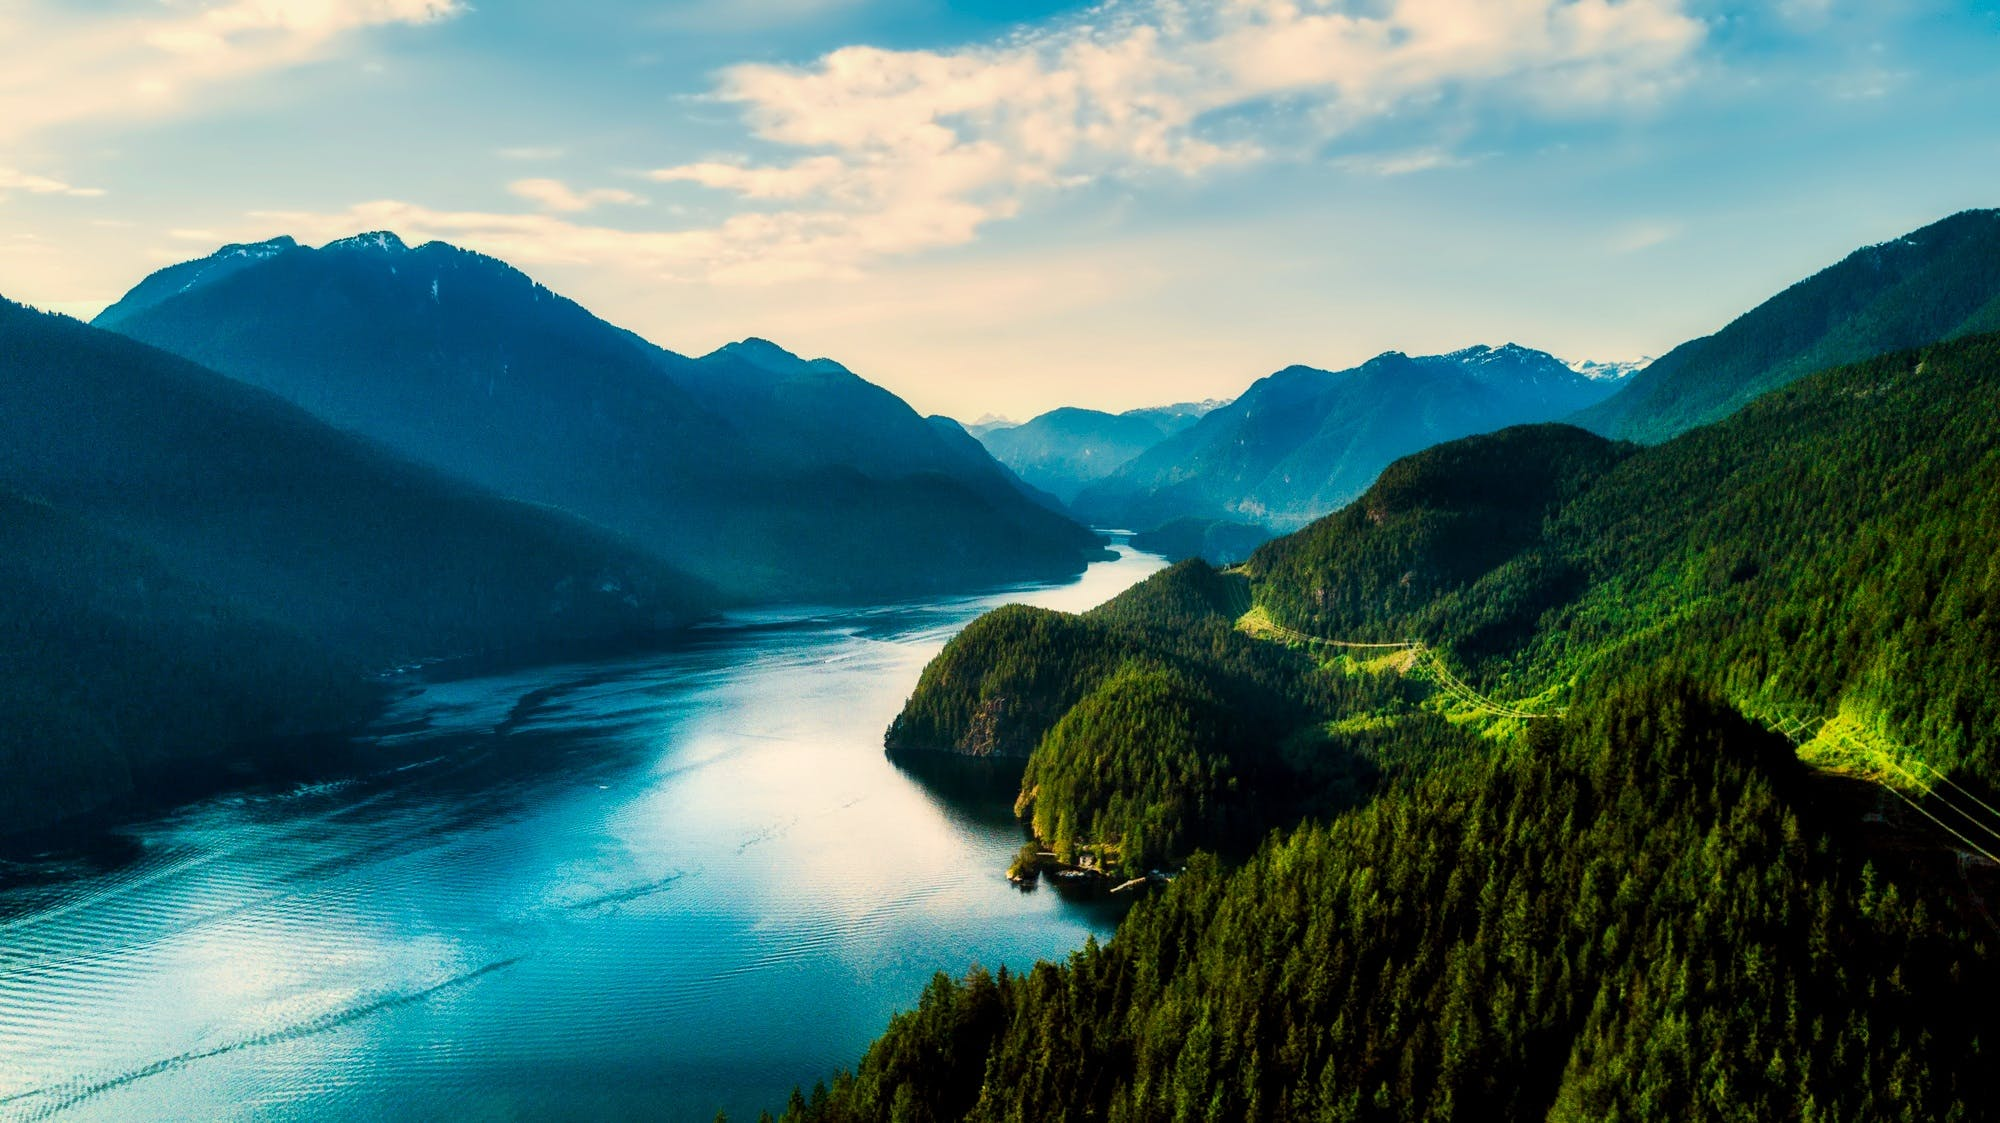 Mountains With River on Center Under Blue Sky